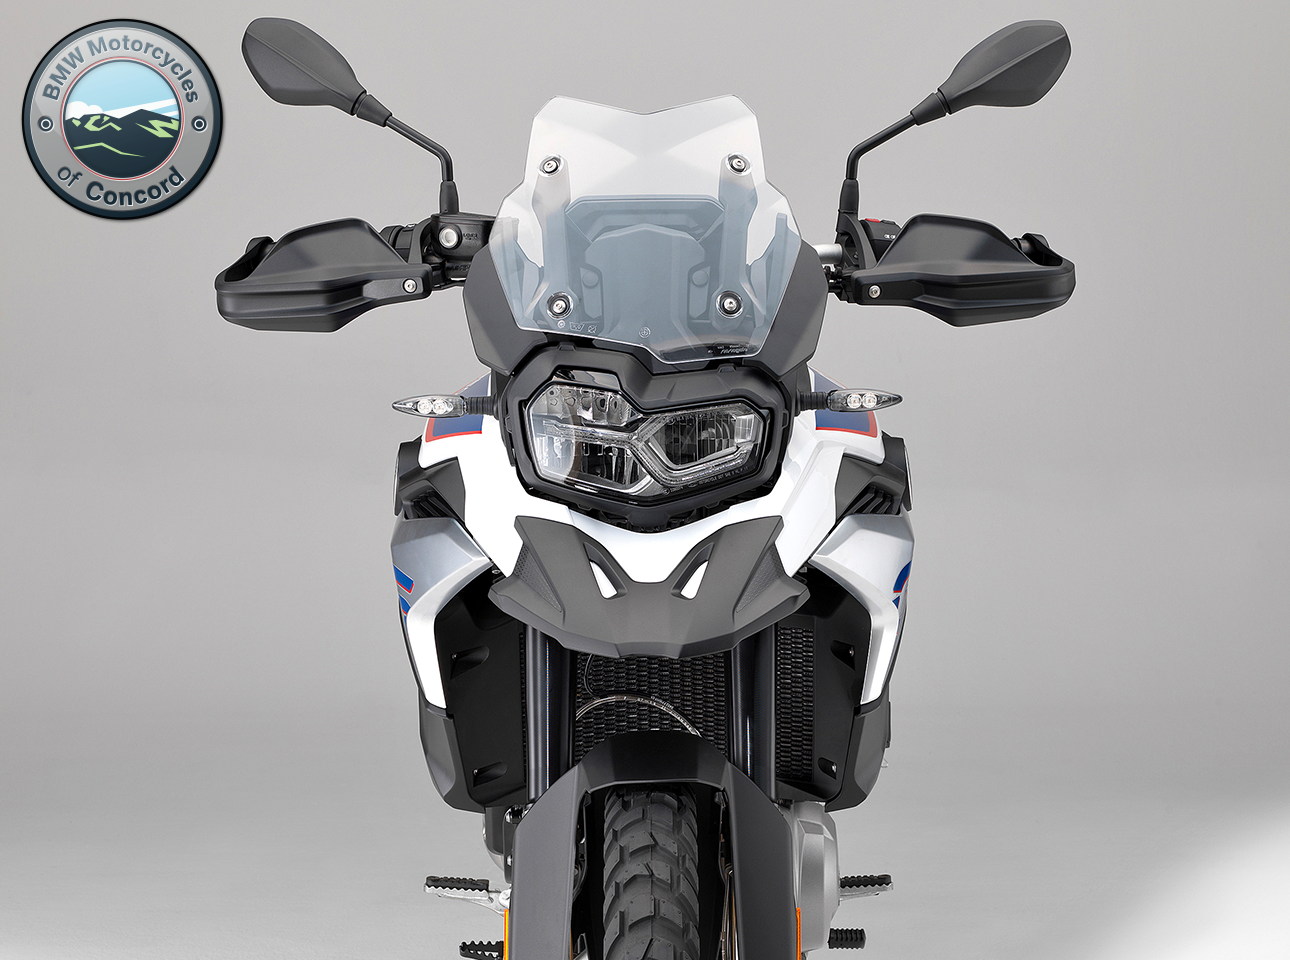 2019 BMW F 850 GS | BMW Motorcycles of Concord | Richmond, CA